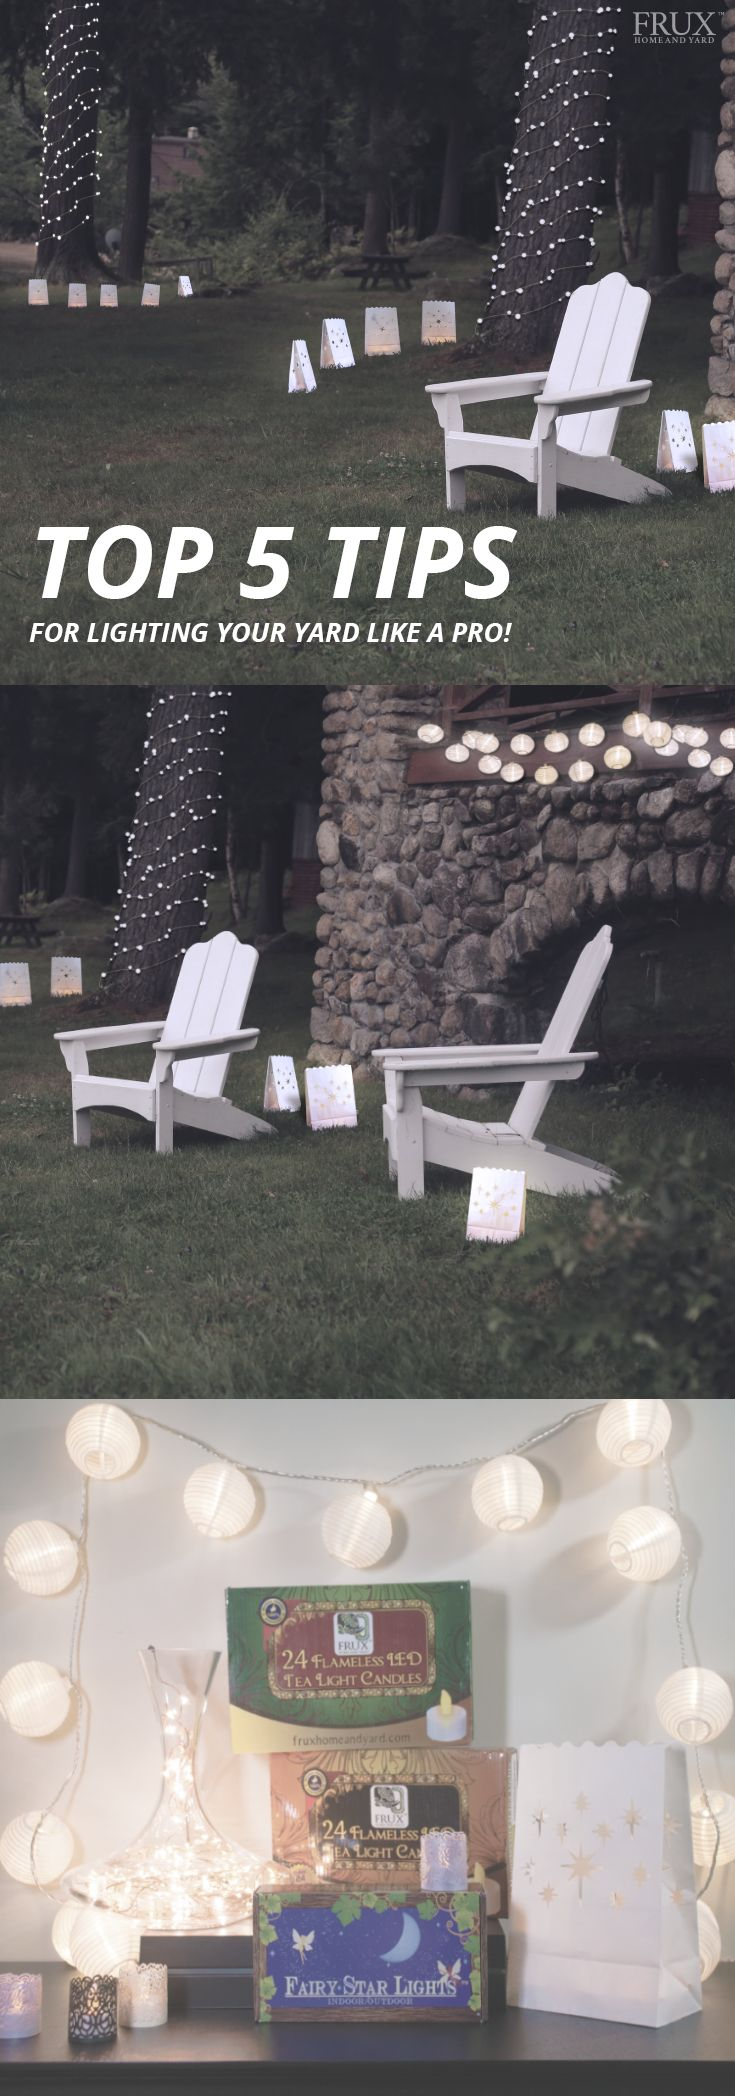 Yardbright coupon codes - 5 Super Easy Ways To Make Your Yard Bright And Beautiful Outdoorlighting Accentlights